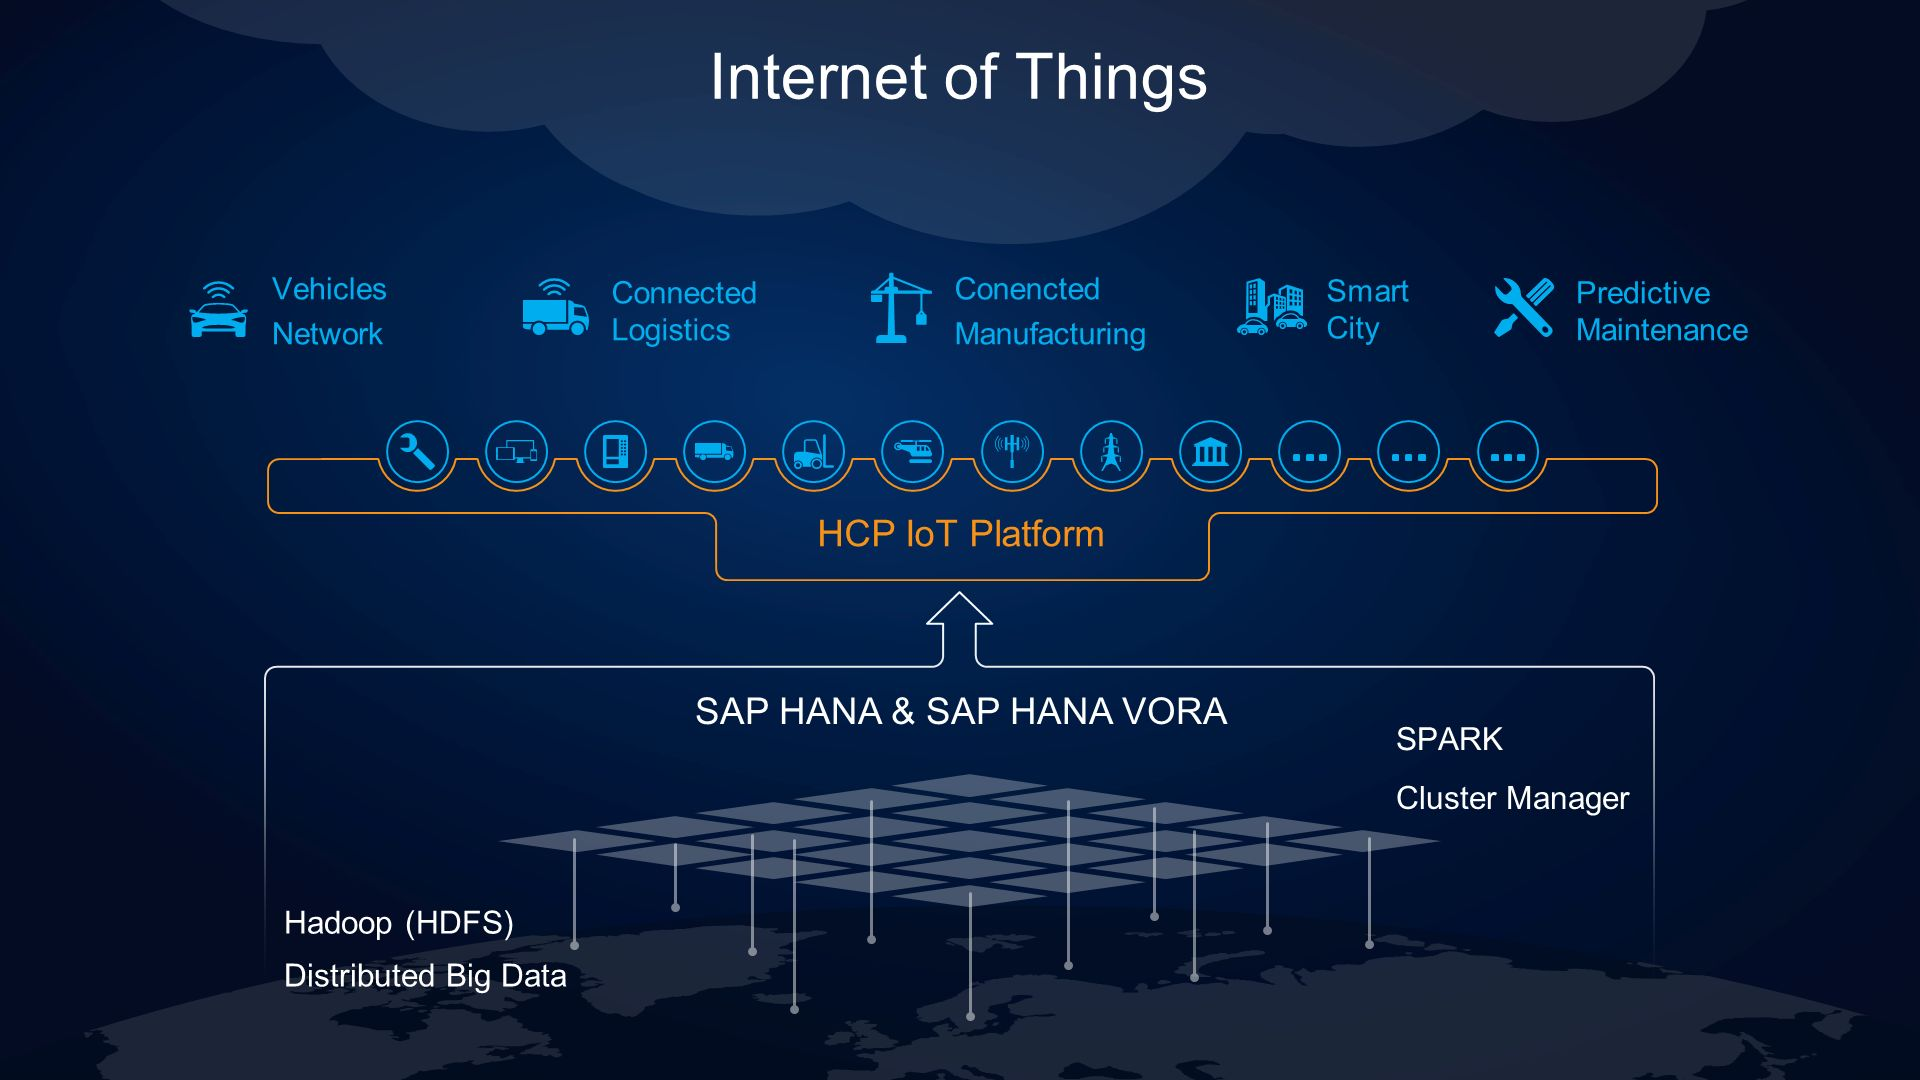 Hadoop (HDFS) Distributed Big Data SPARK Cluster Manager HCP IoT Platform Vehicles Network Connected Logistics Conencted Manufacturing Smart City Predictive Maintenance Internet of Things SAP HANA & SAP HANA VORA